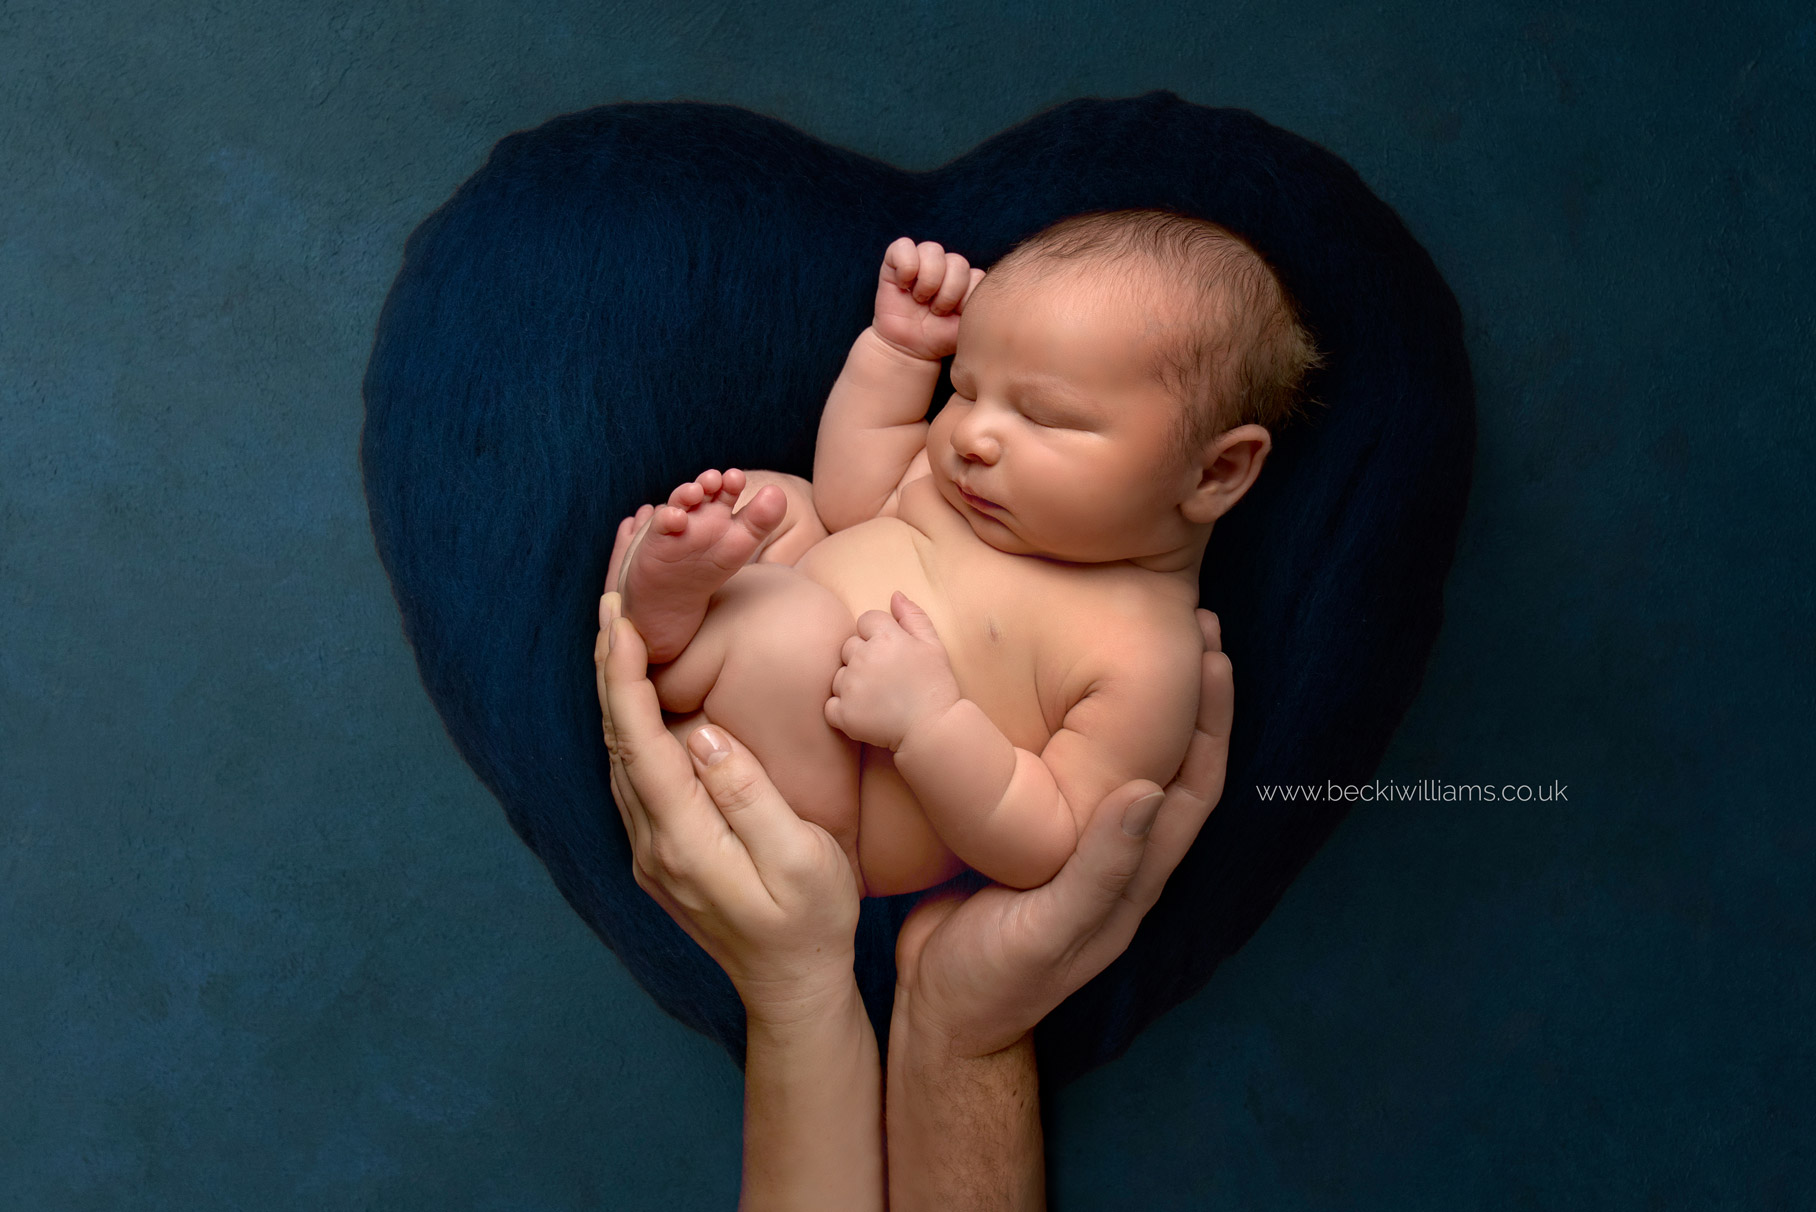 composite image using a luisa dunn backdrop of a baby laying curled up in his parent's hands on a blue heart backdrop